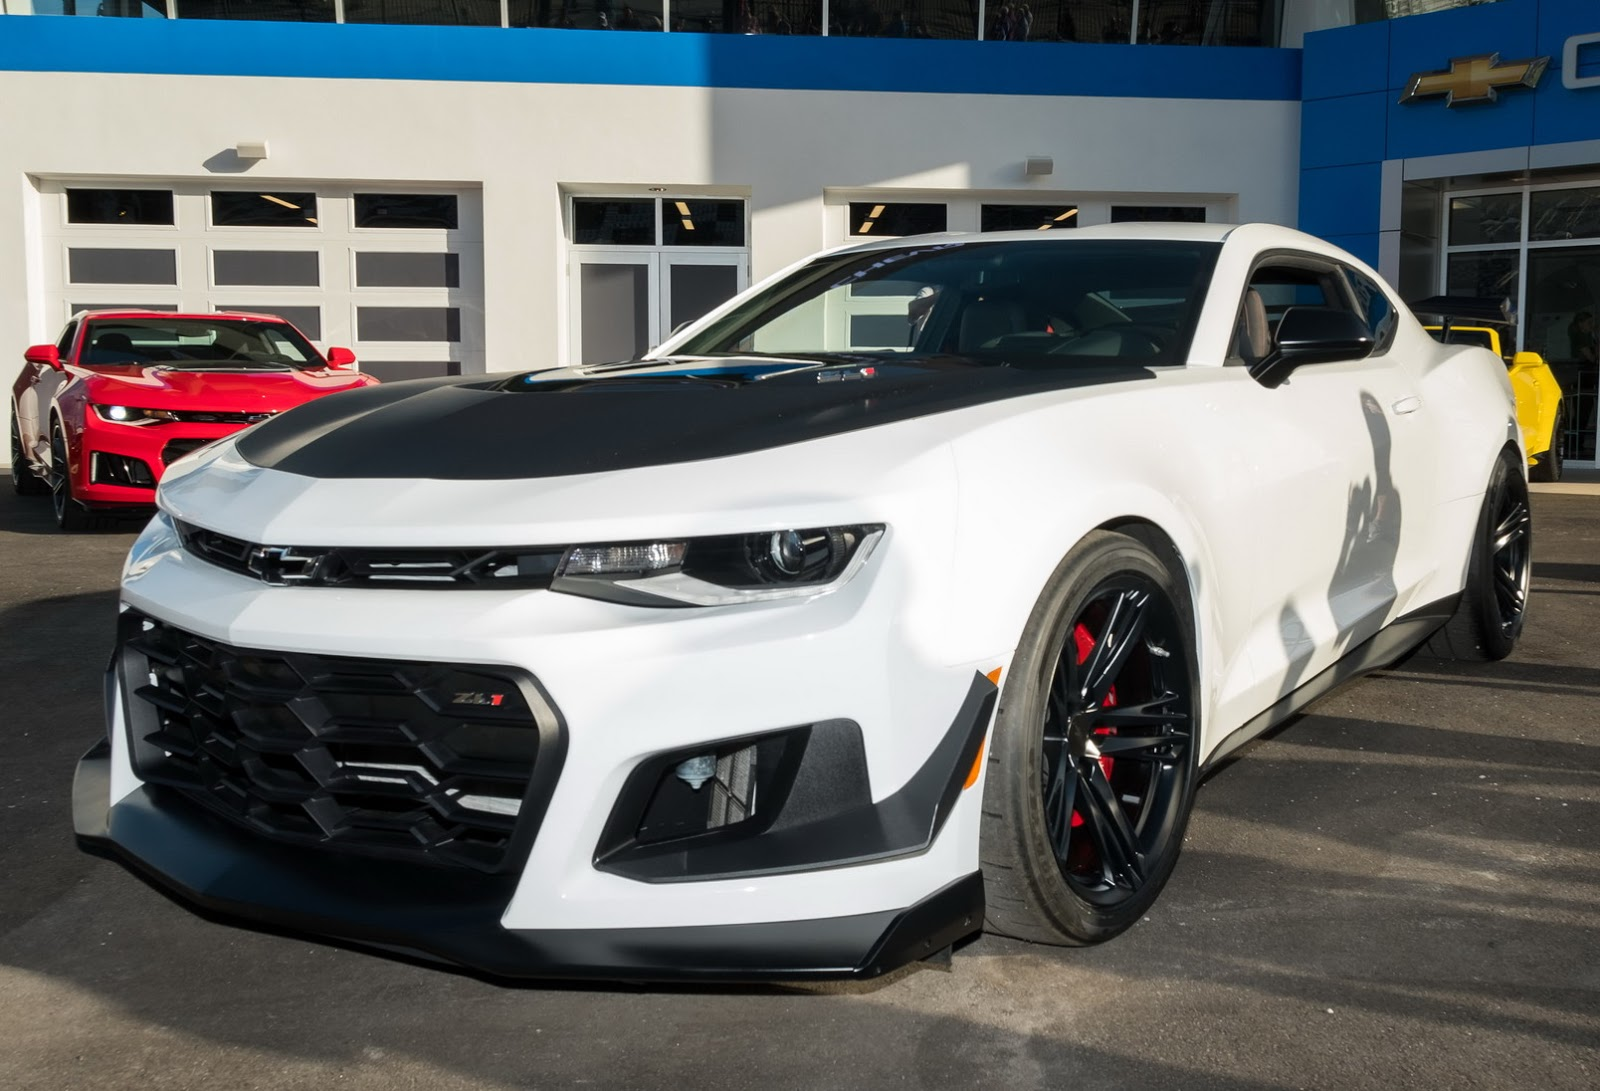 2018 Chevrolet Camaro Zl1 1le Priced From 69 995 Goes On